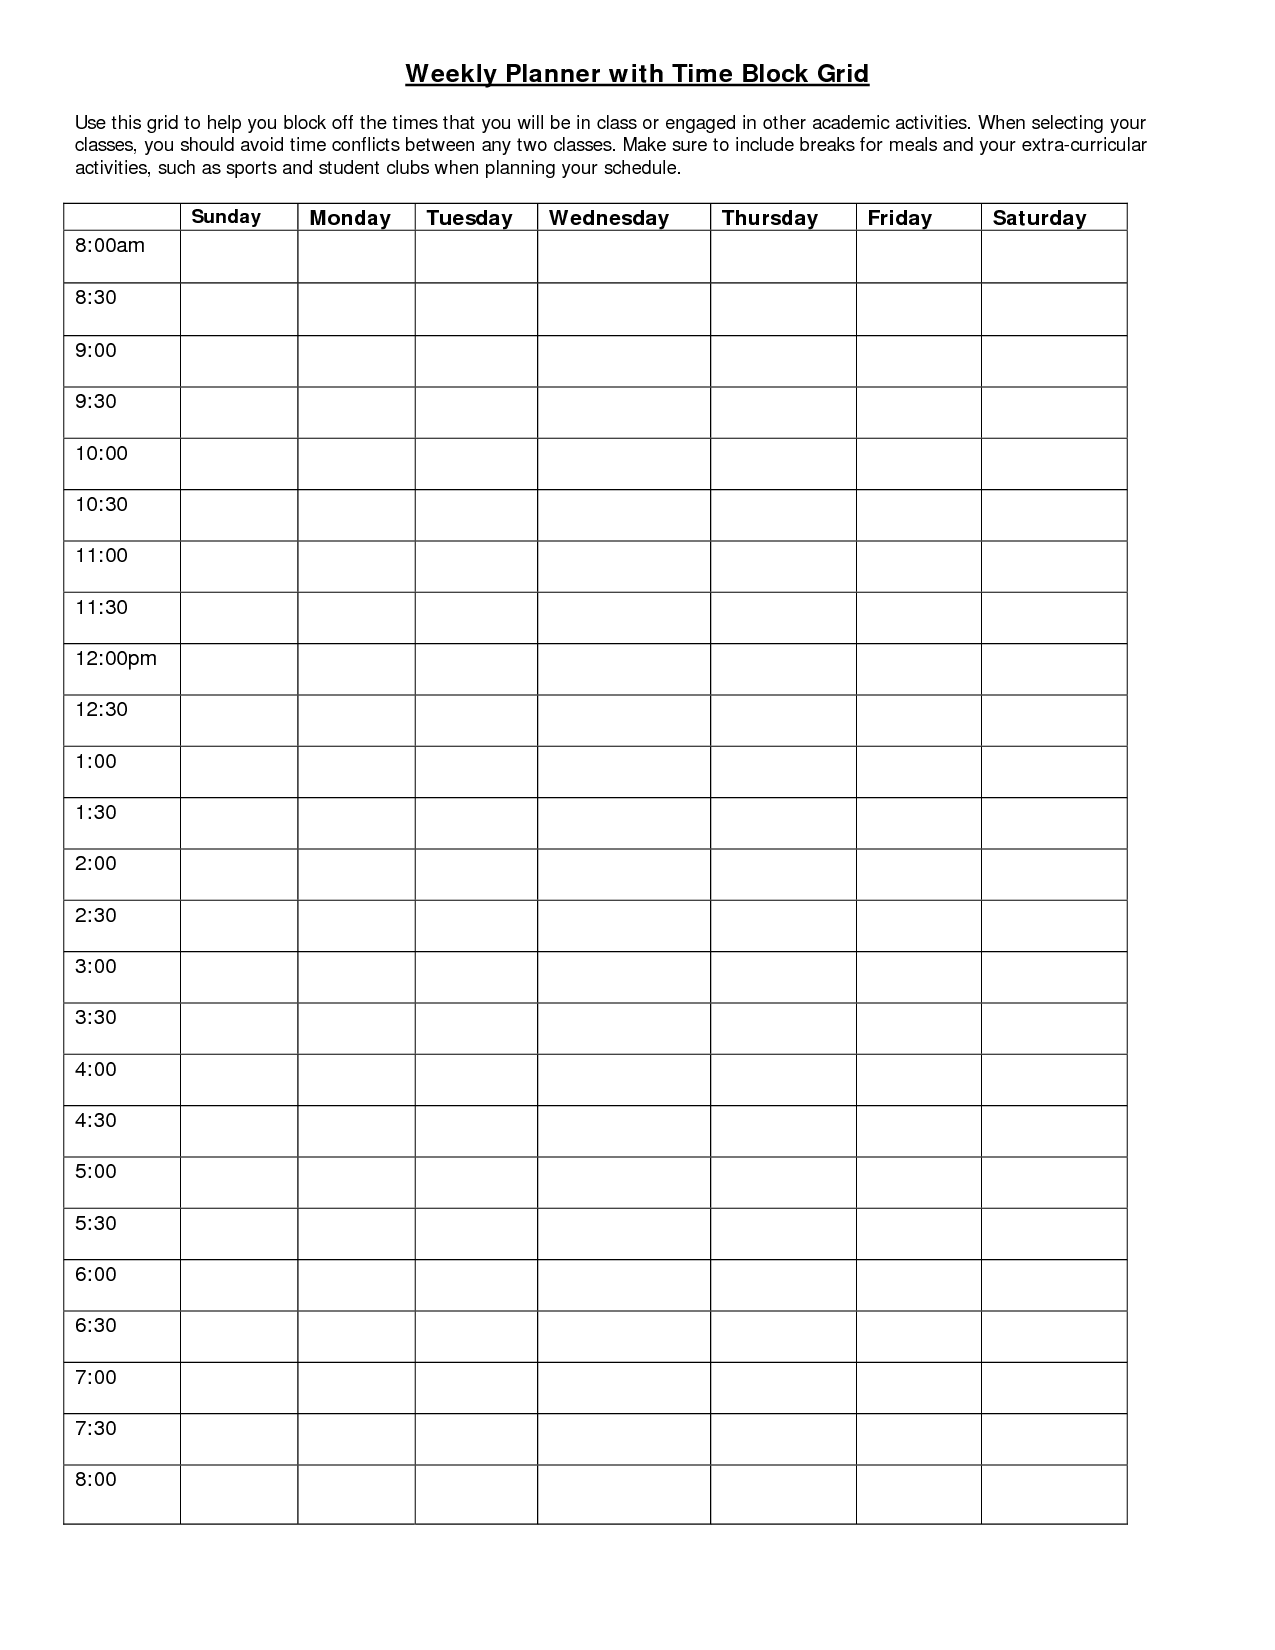 weekly planner with time block grid good ideas pinterest weekly planner planners and times